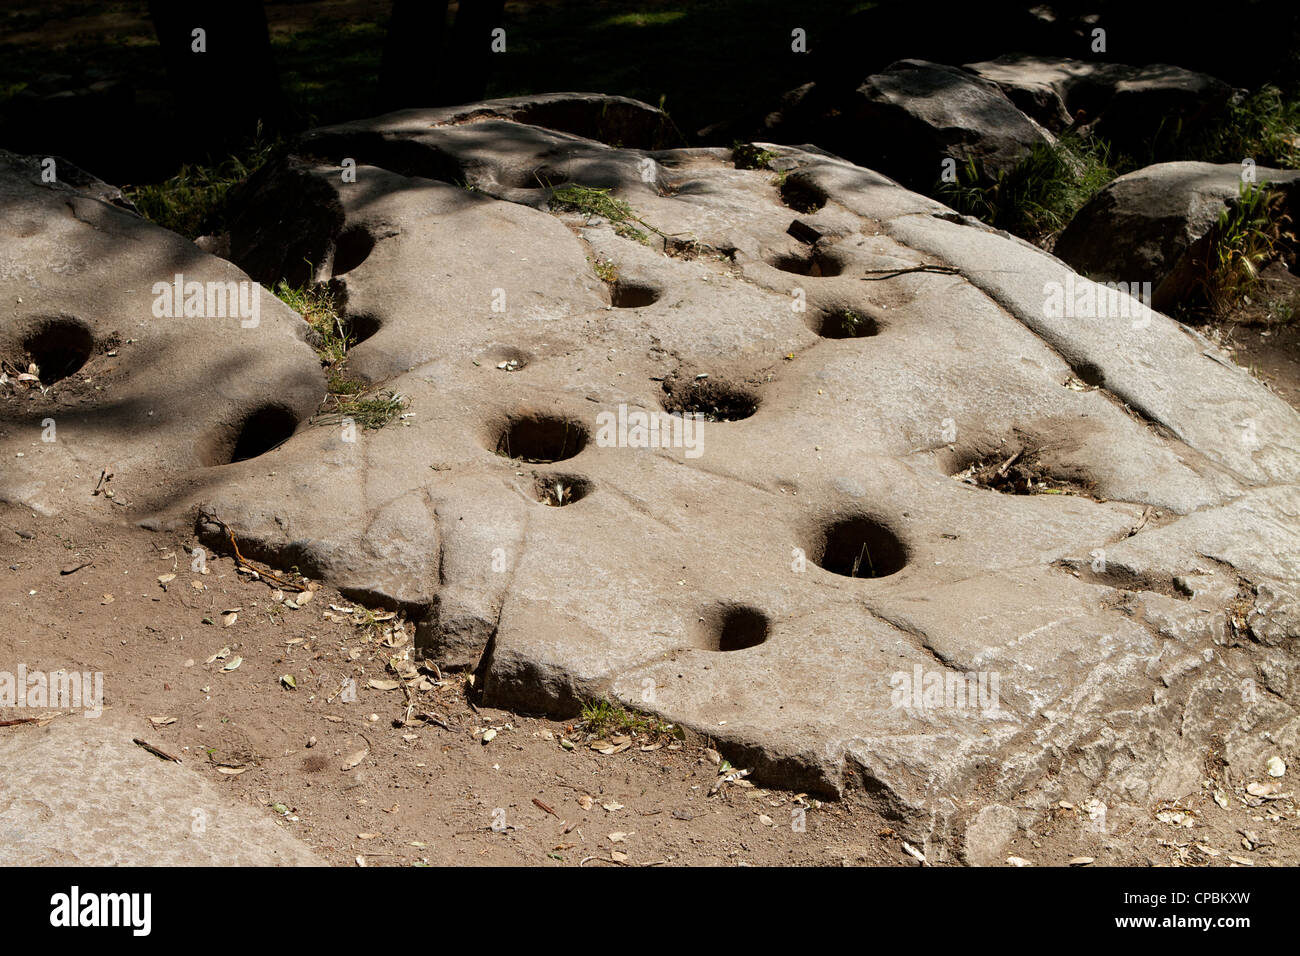 Native American Indian acorn grinding holes in bedrock at the Marshall Gold Discovery state historic park in Coloma - Stock Image